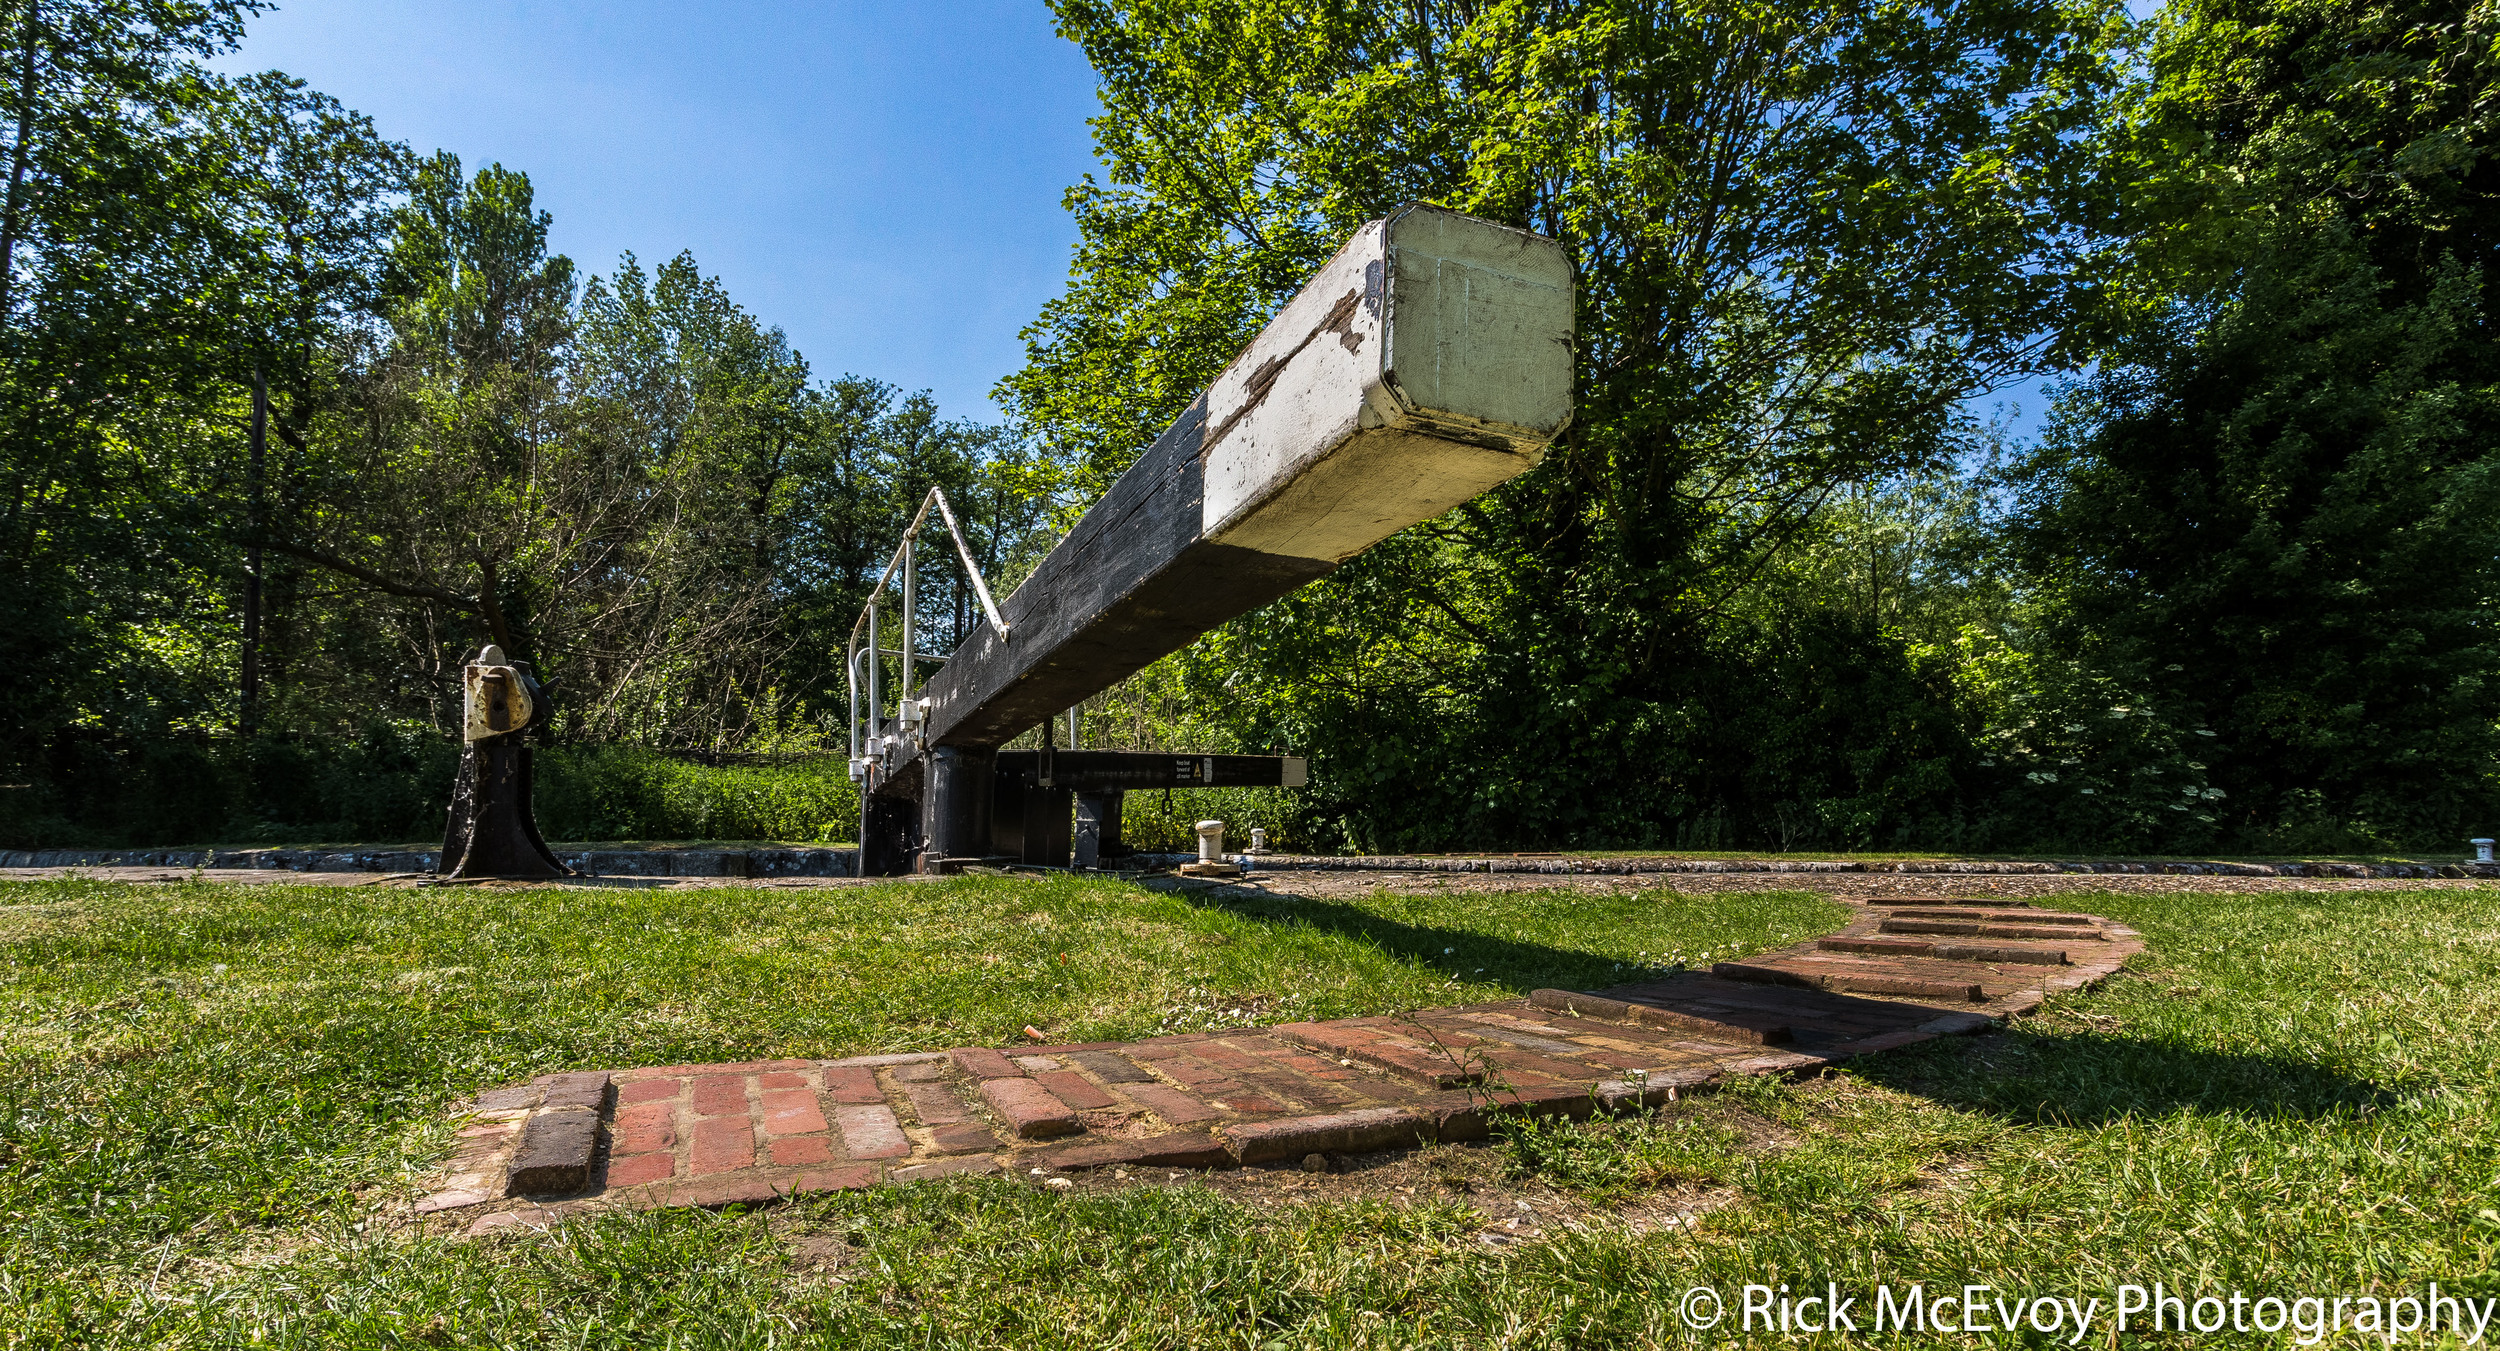 Canal Lock - Rick McEvoy Photography - June 2015